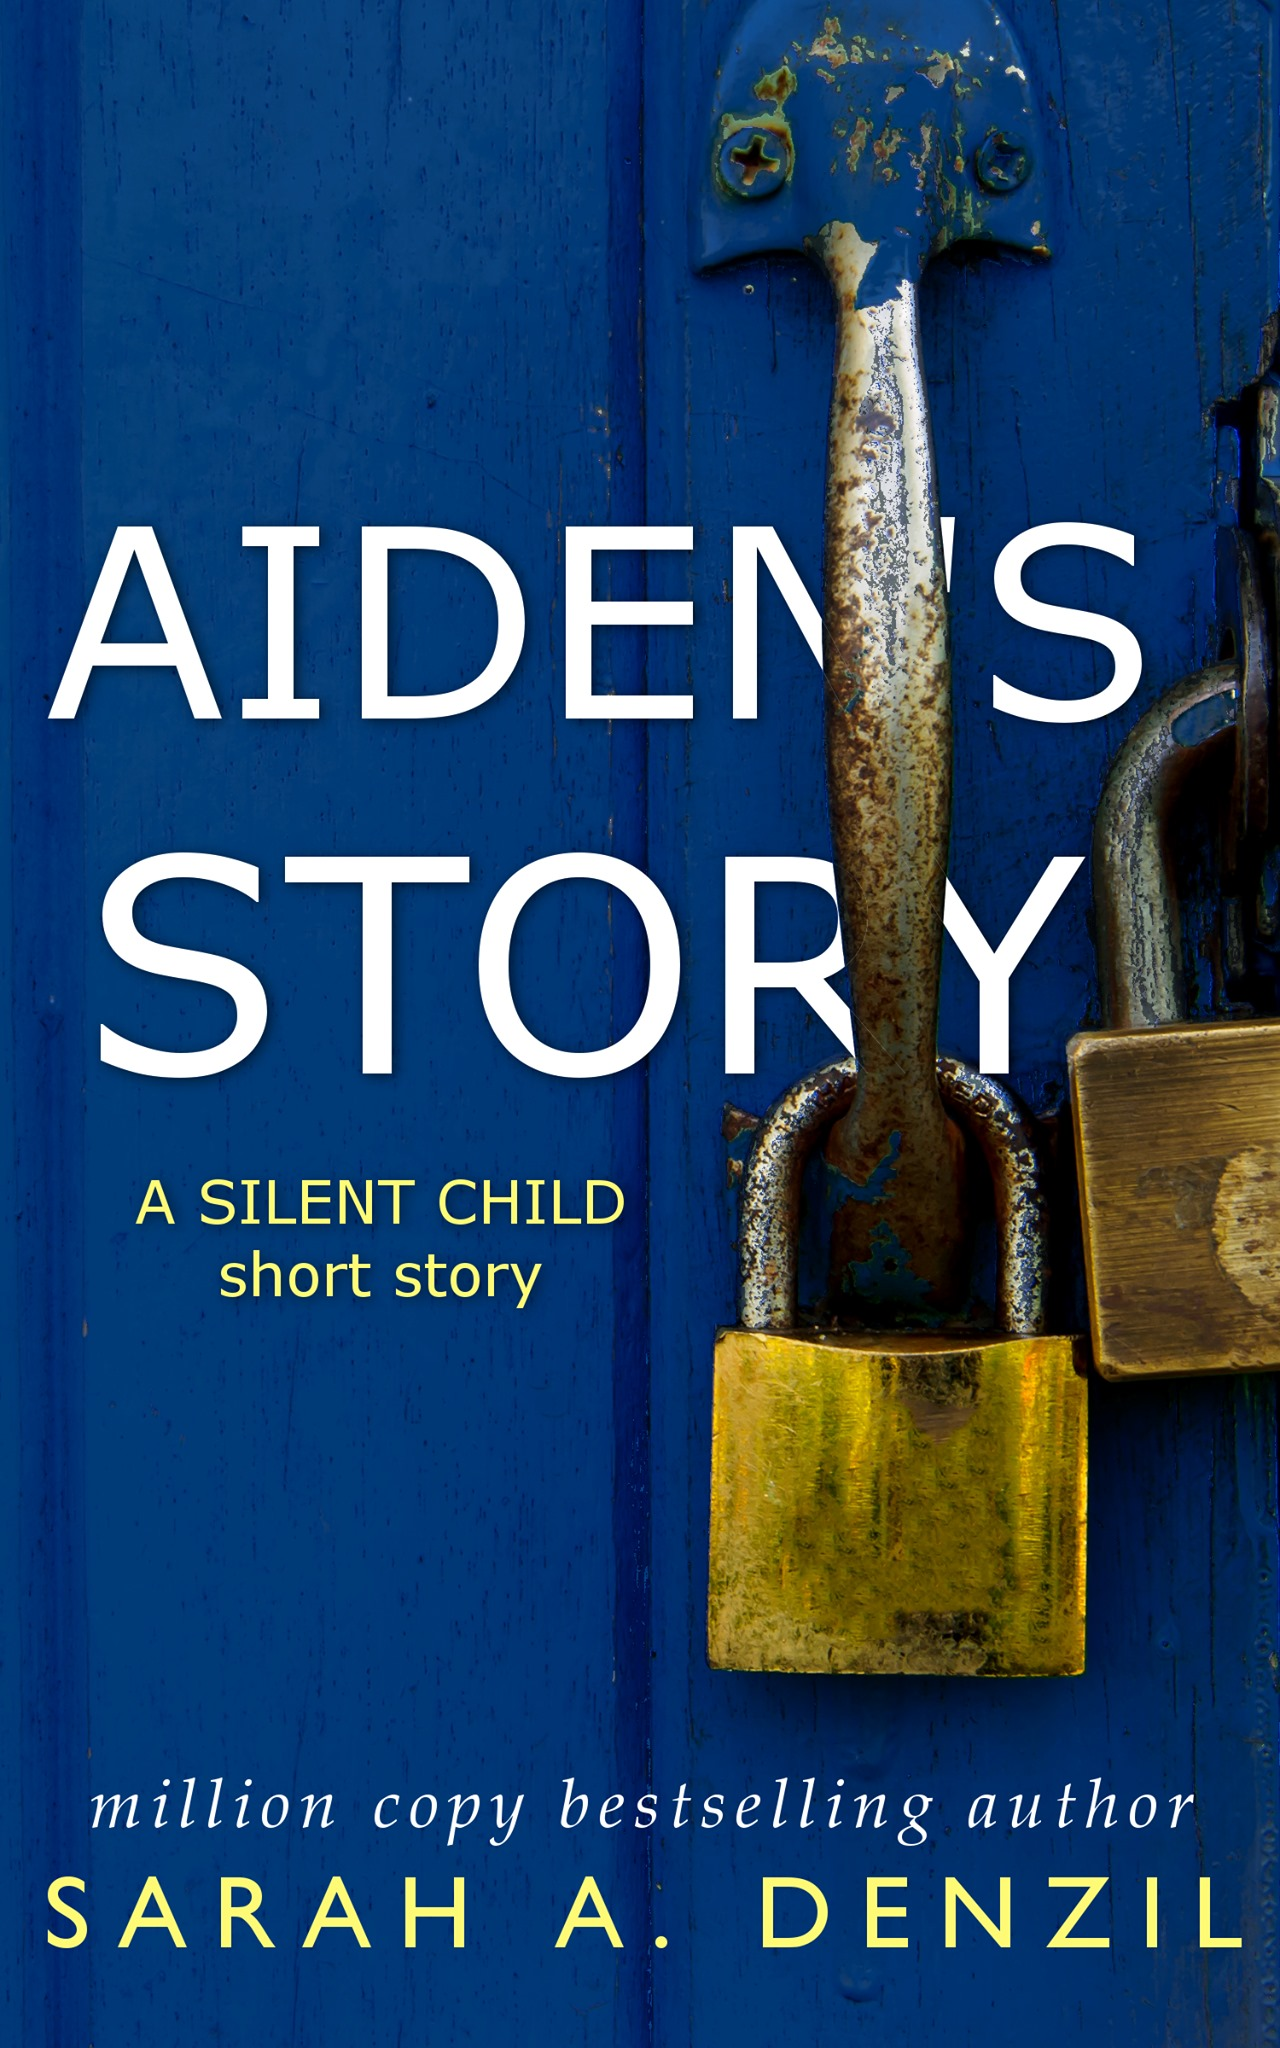 Aiden story